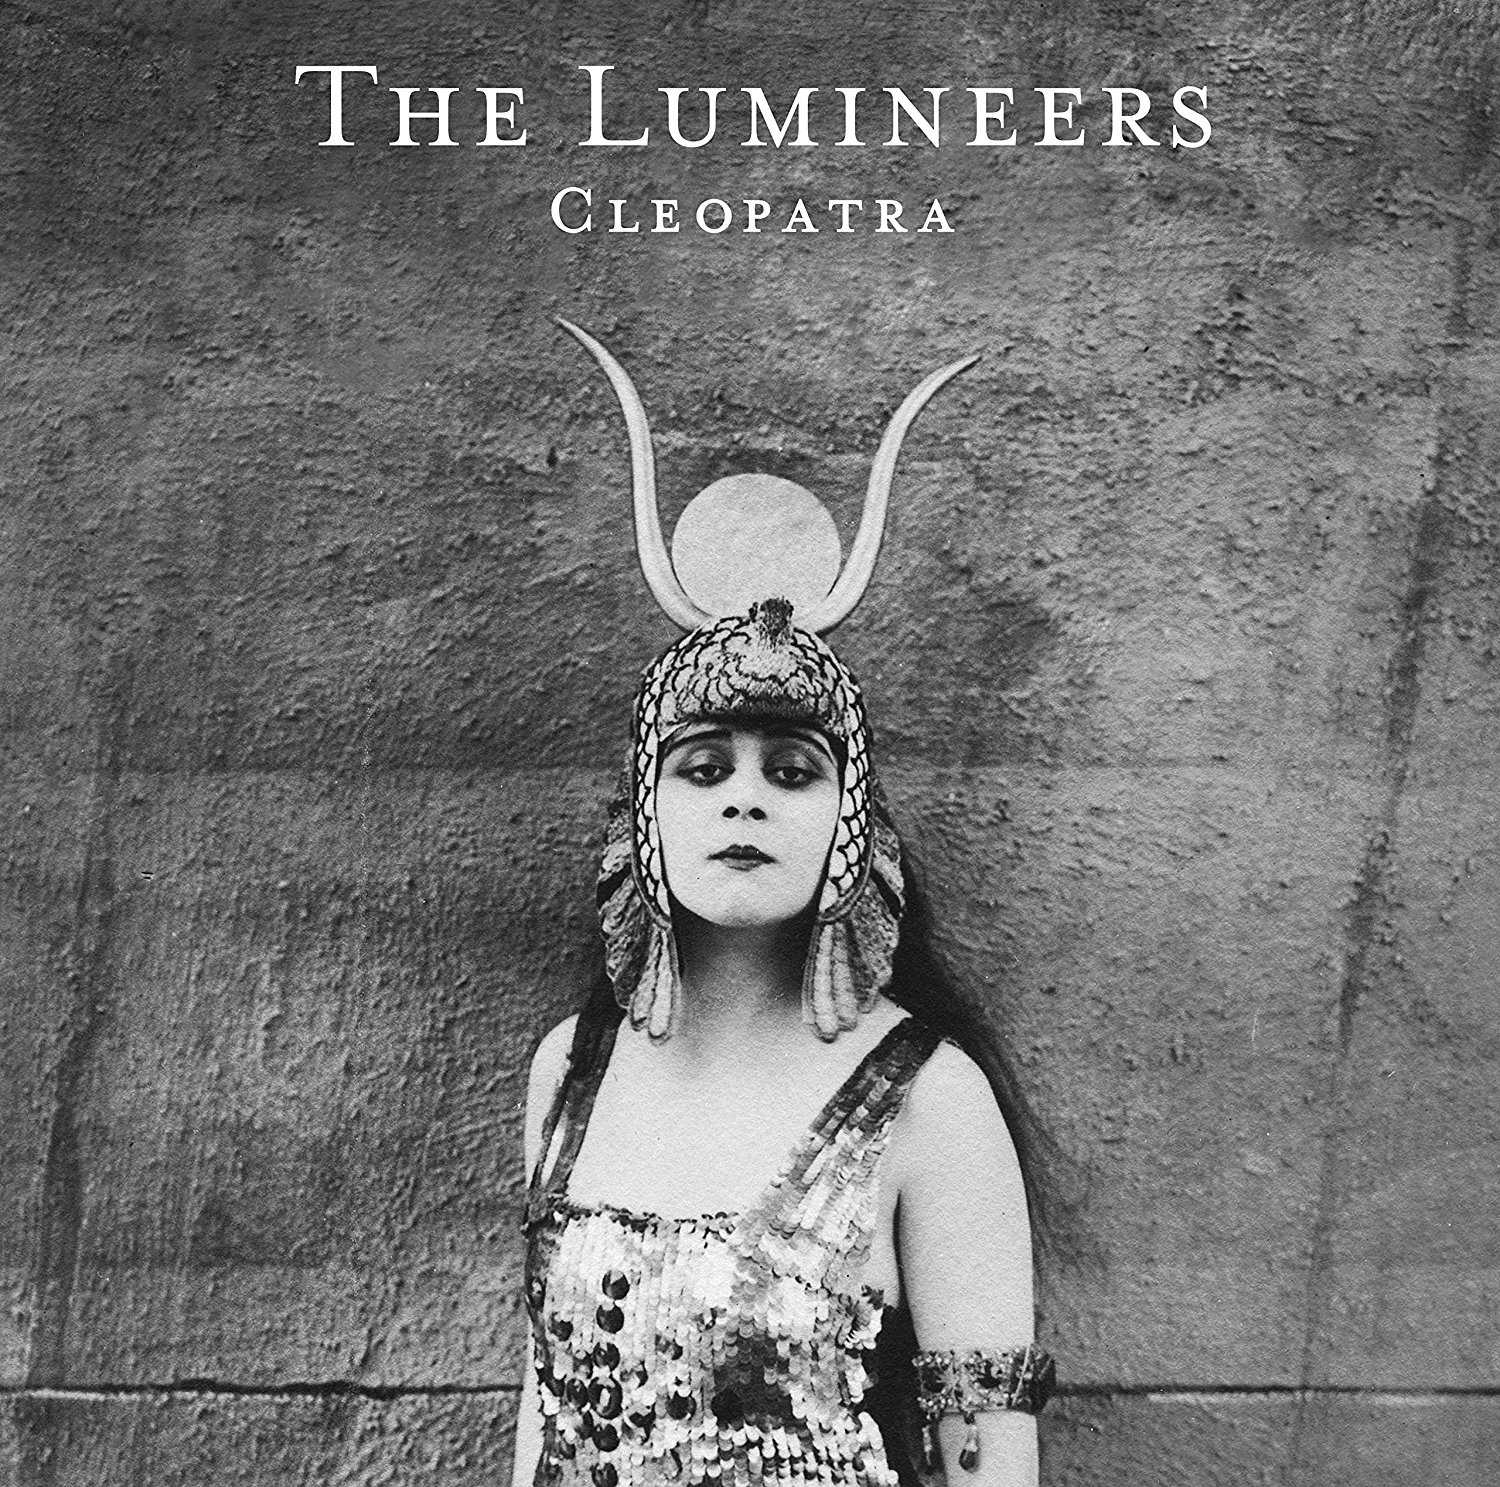 Writer reflects on The Lumineers' most recent album